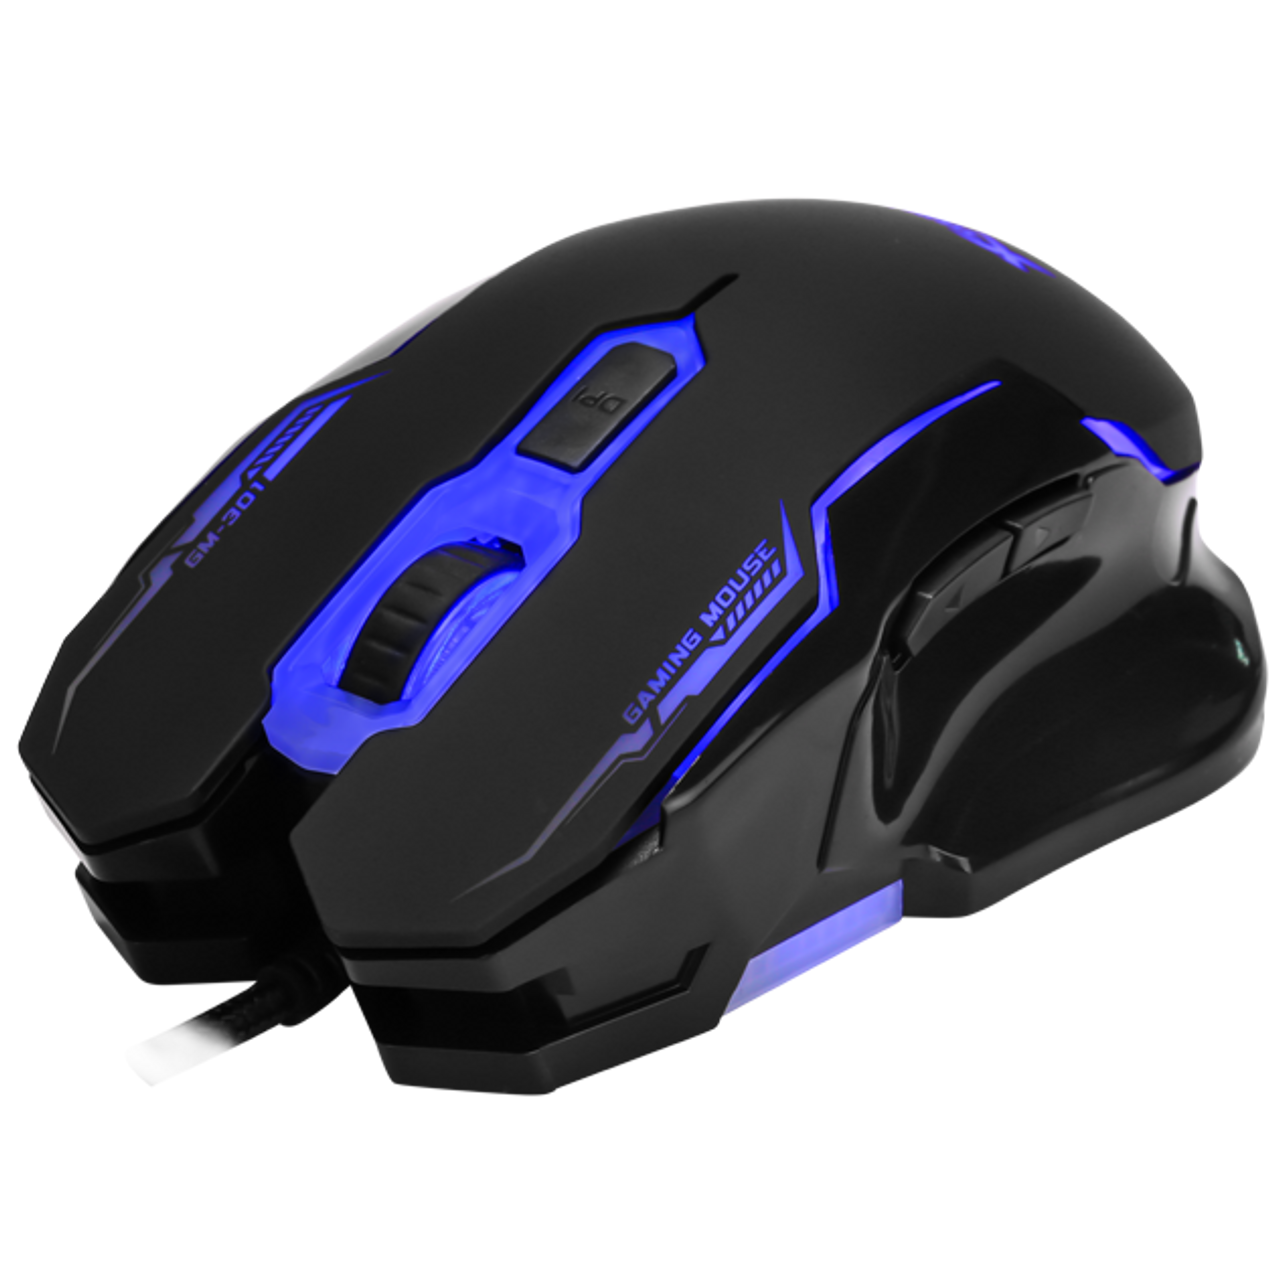 Xtrike GM-301 Mouse Backlit Optical